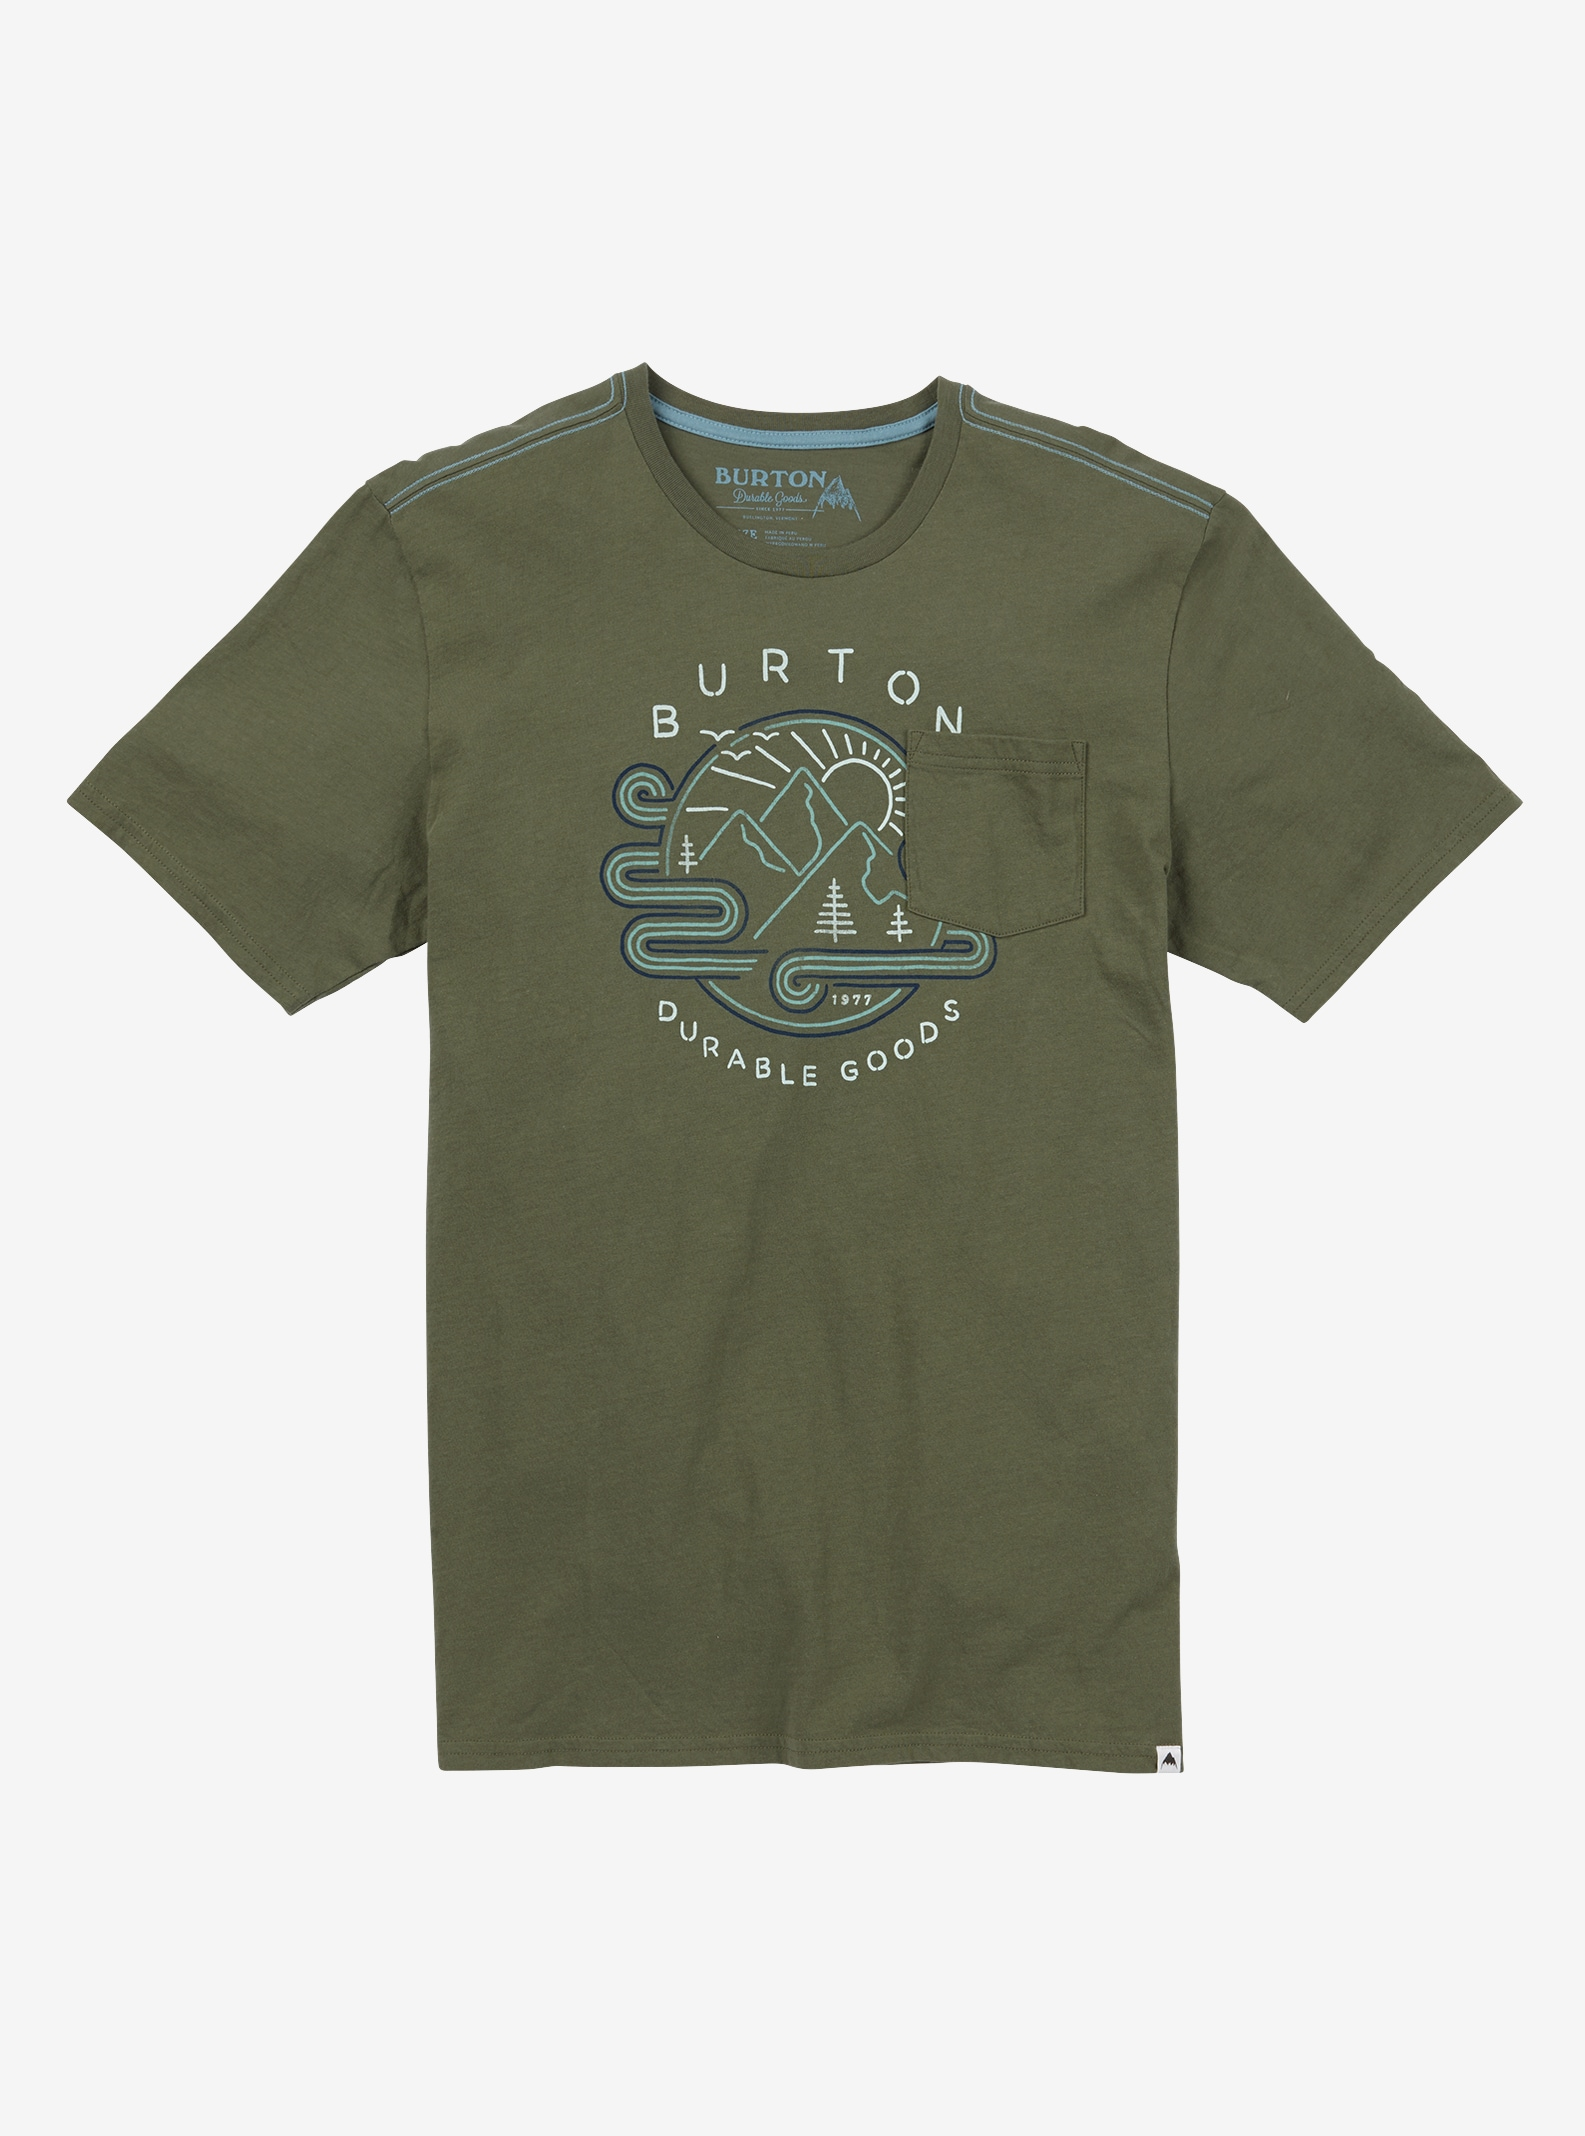 Men's Burton Grange Short Sleeve T Shirt shown in Dusty Olive